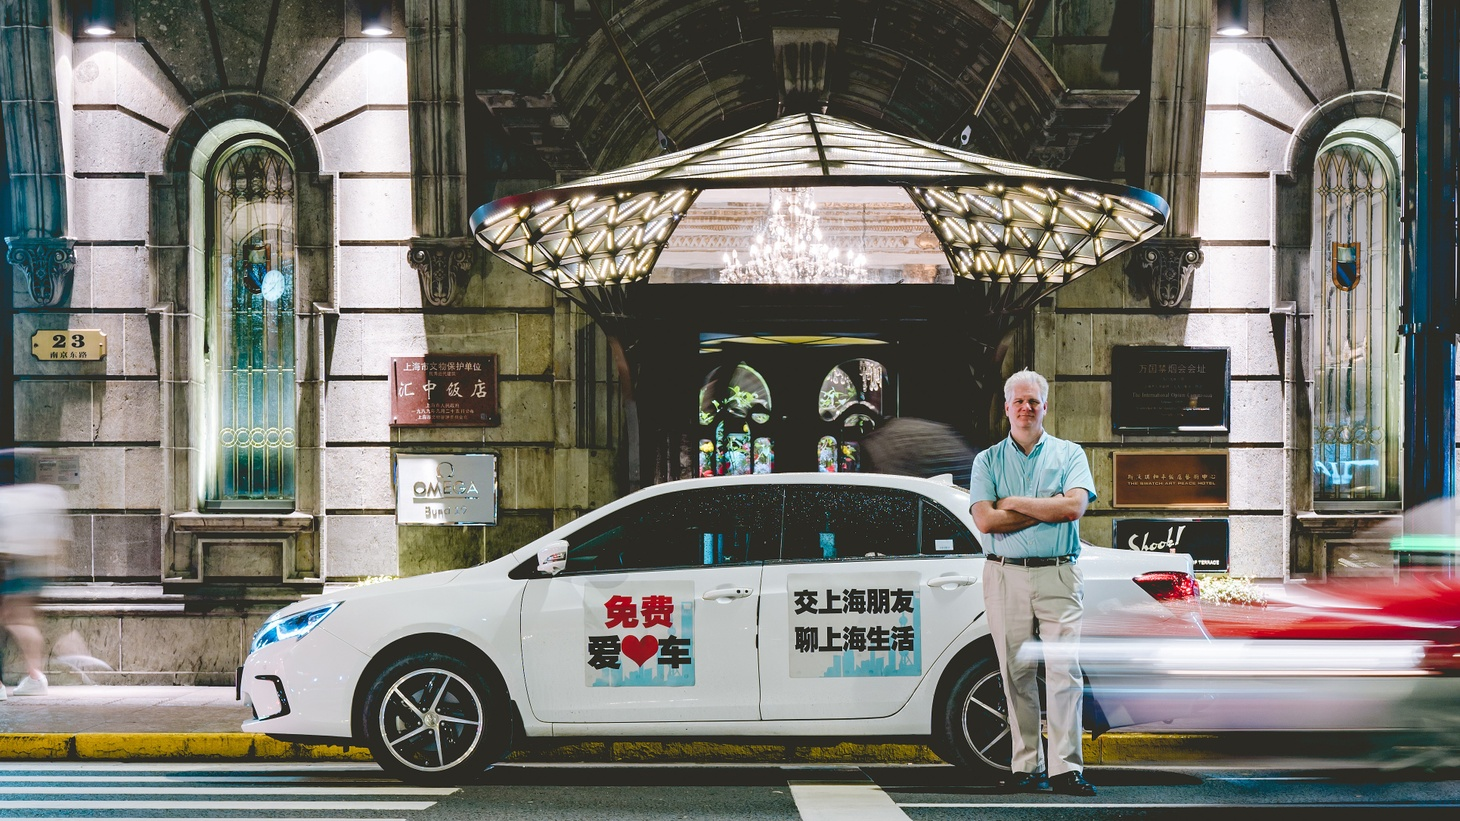 Frank Langfitt with his taxi in Shanghai.